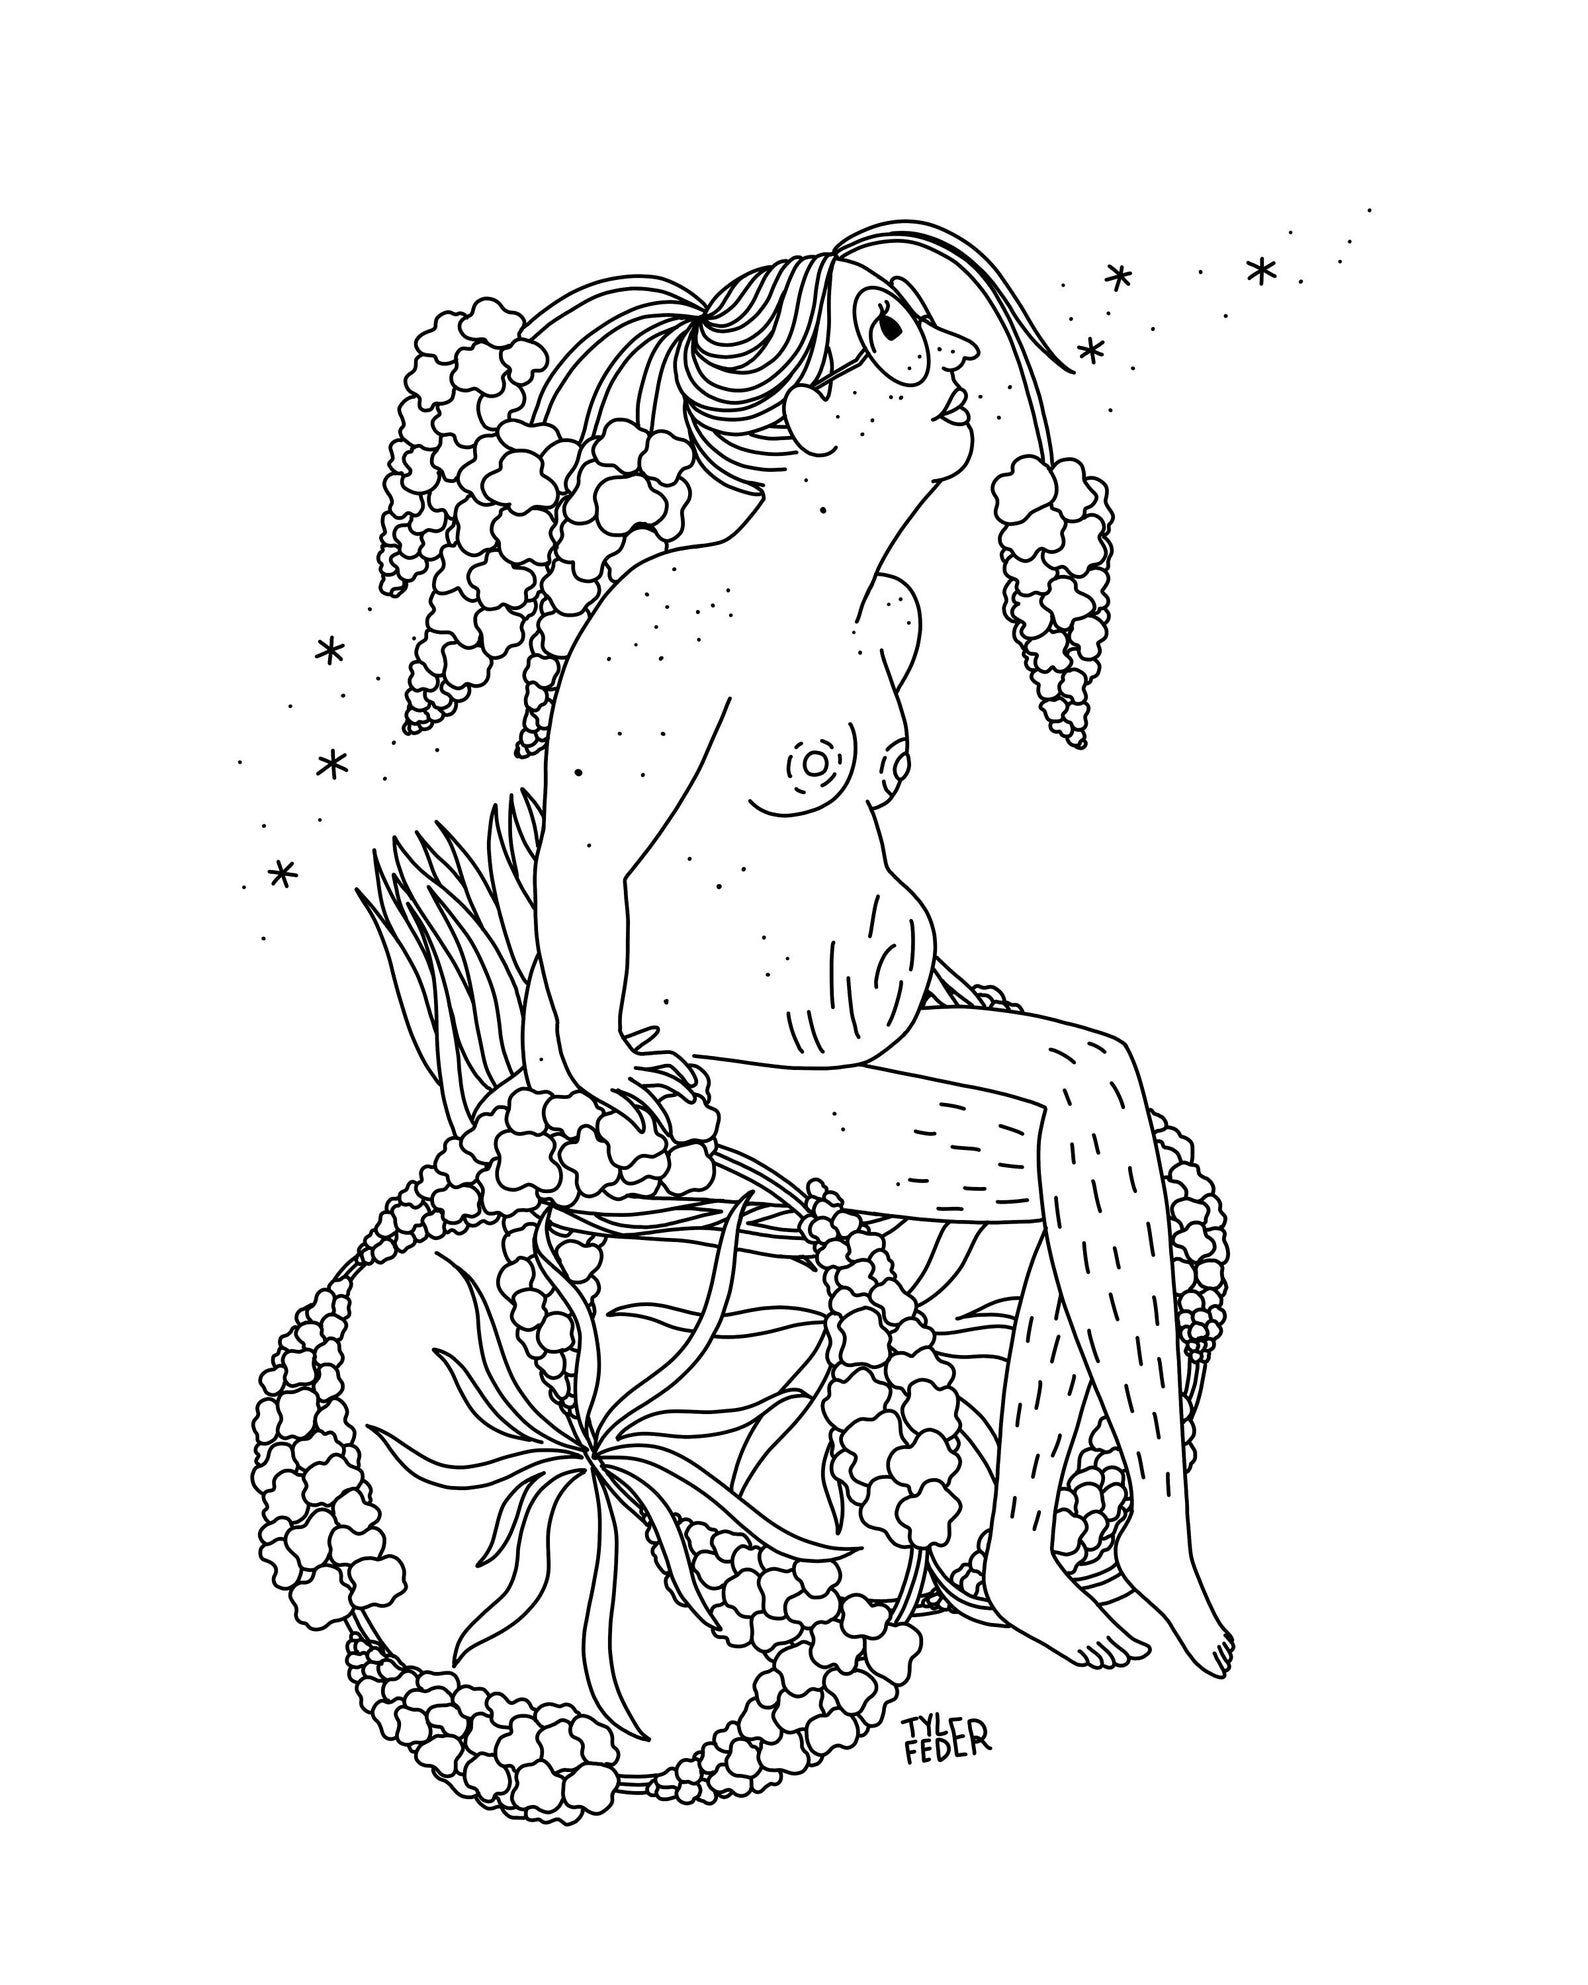 Floral coloring book design of a person in a wheelchair